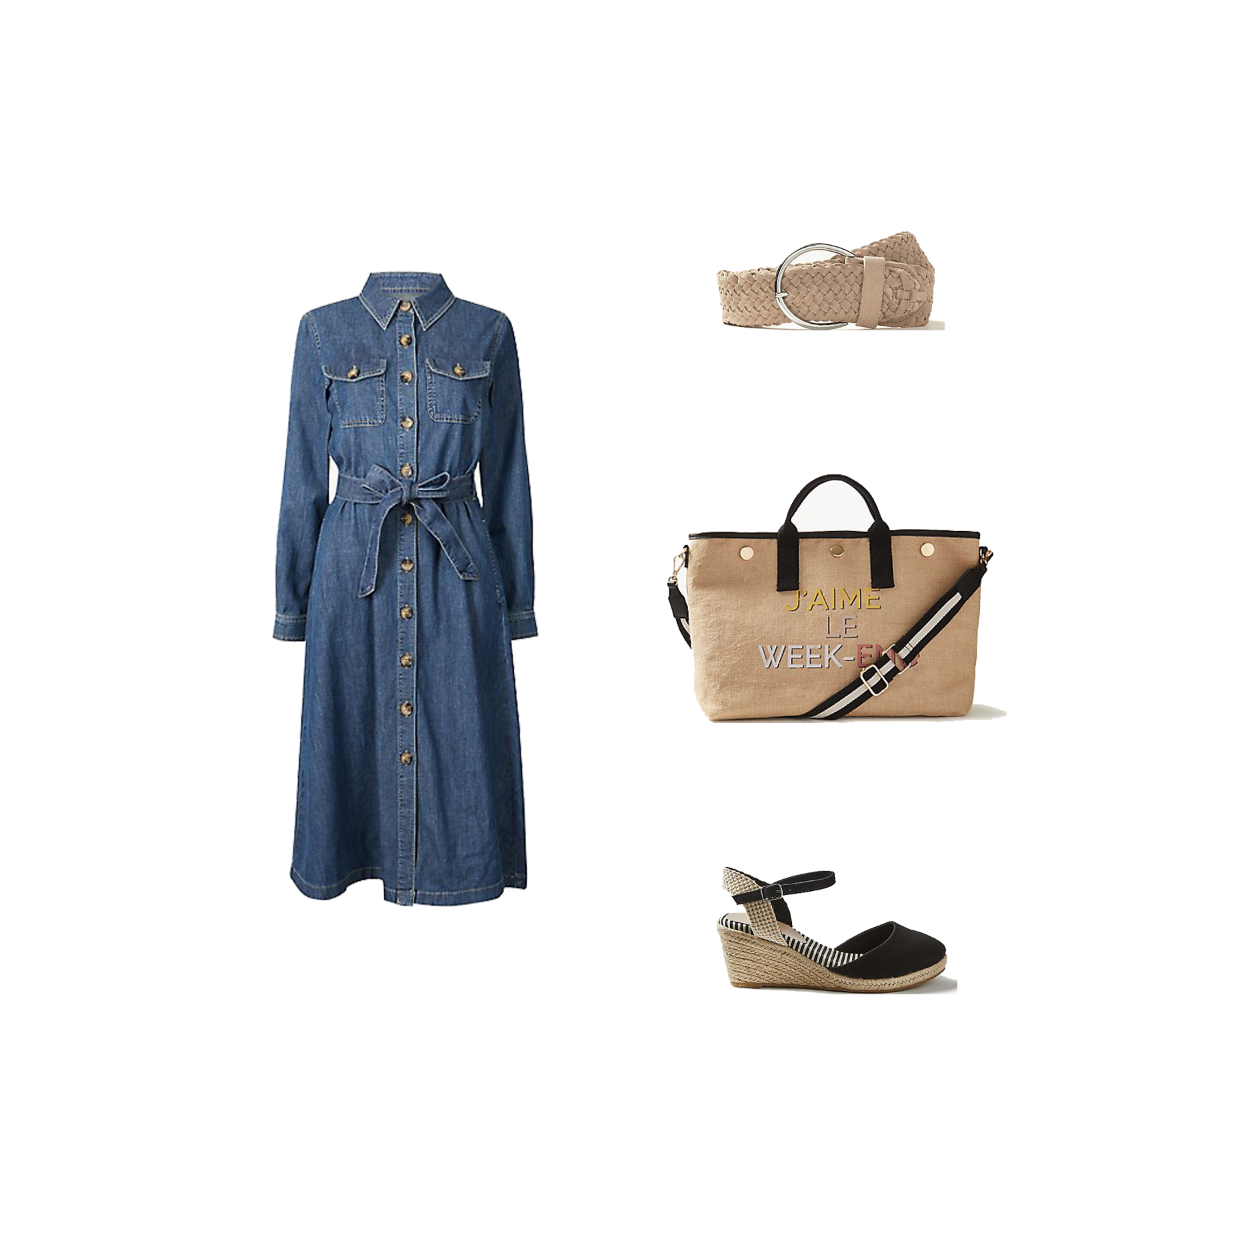 my midlife fashion, marks and spencer denim midi skirt dress, marks and spencer leather waist belt, marks and spencer wide fit wedge espadrilles, marks and spencer holiday slogan tote